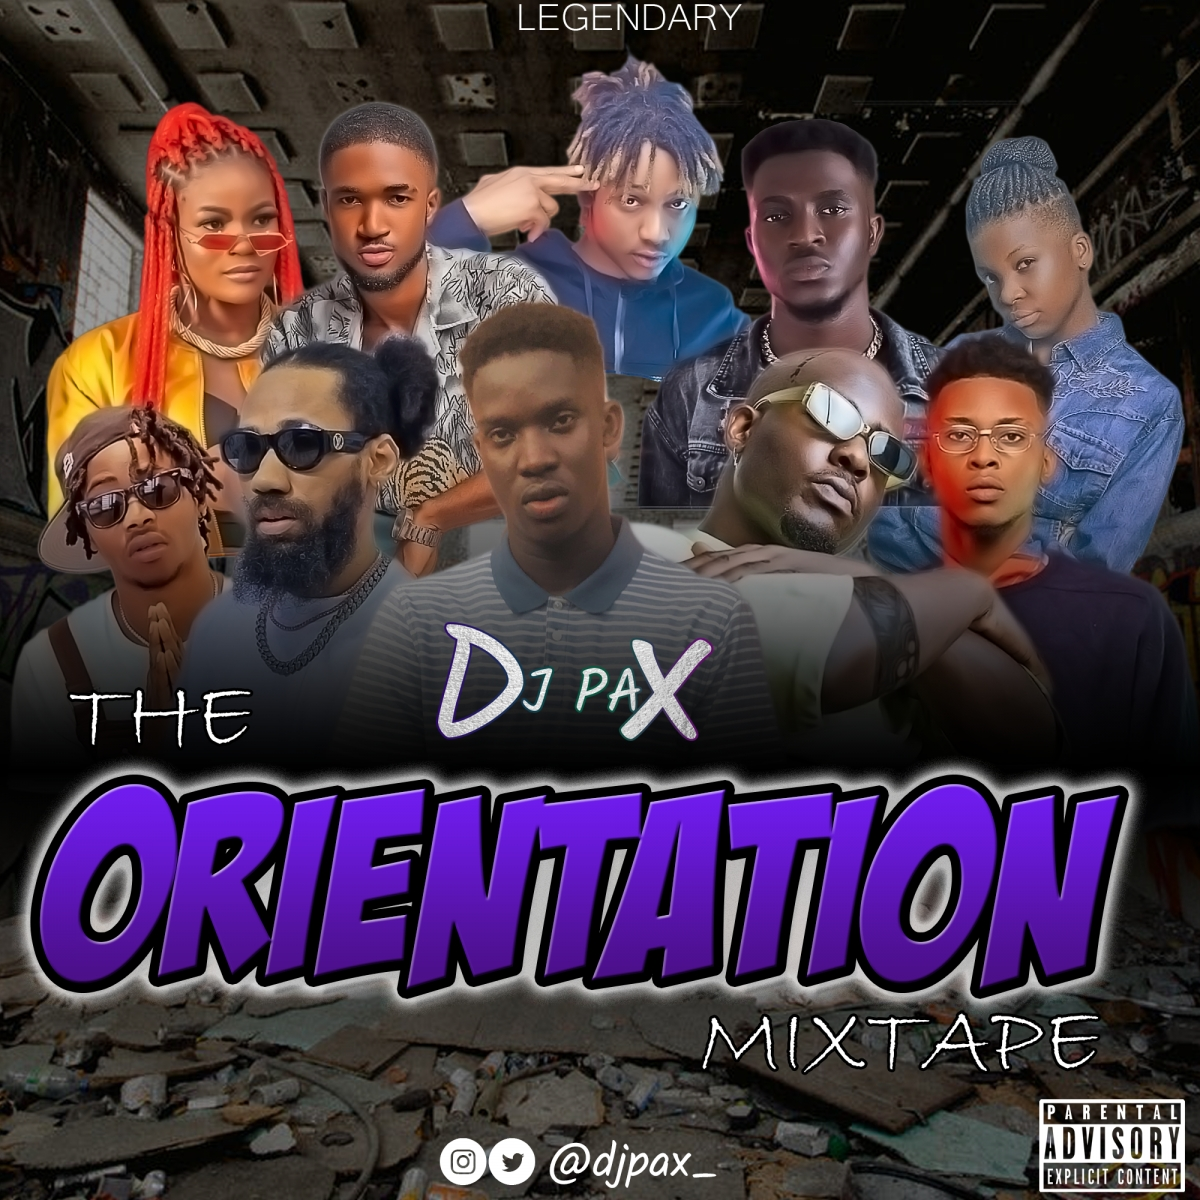 DJ PAX - The Orientation Mixtape